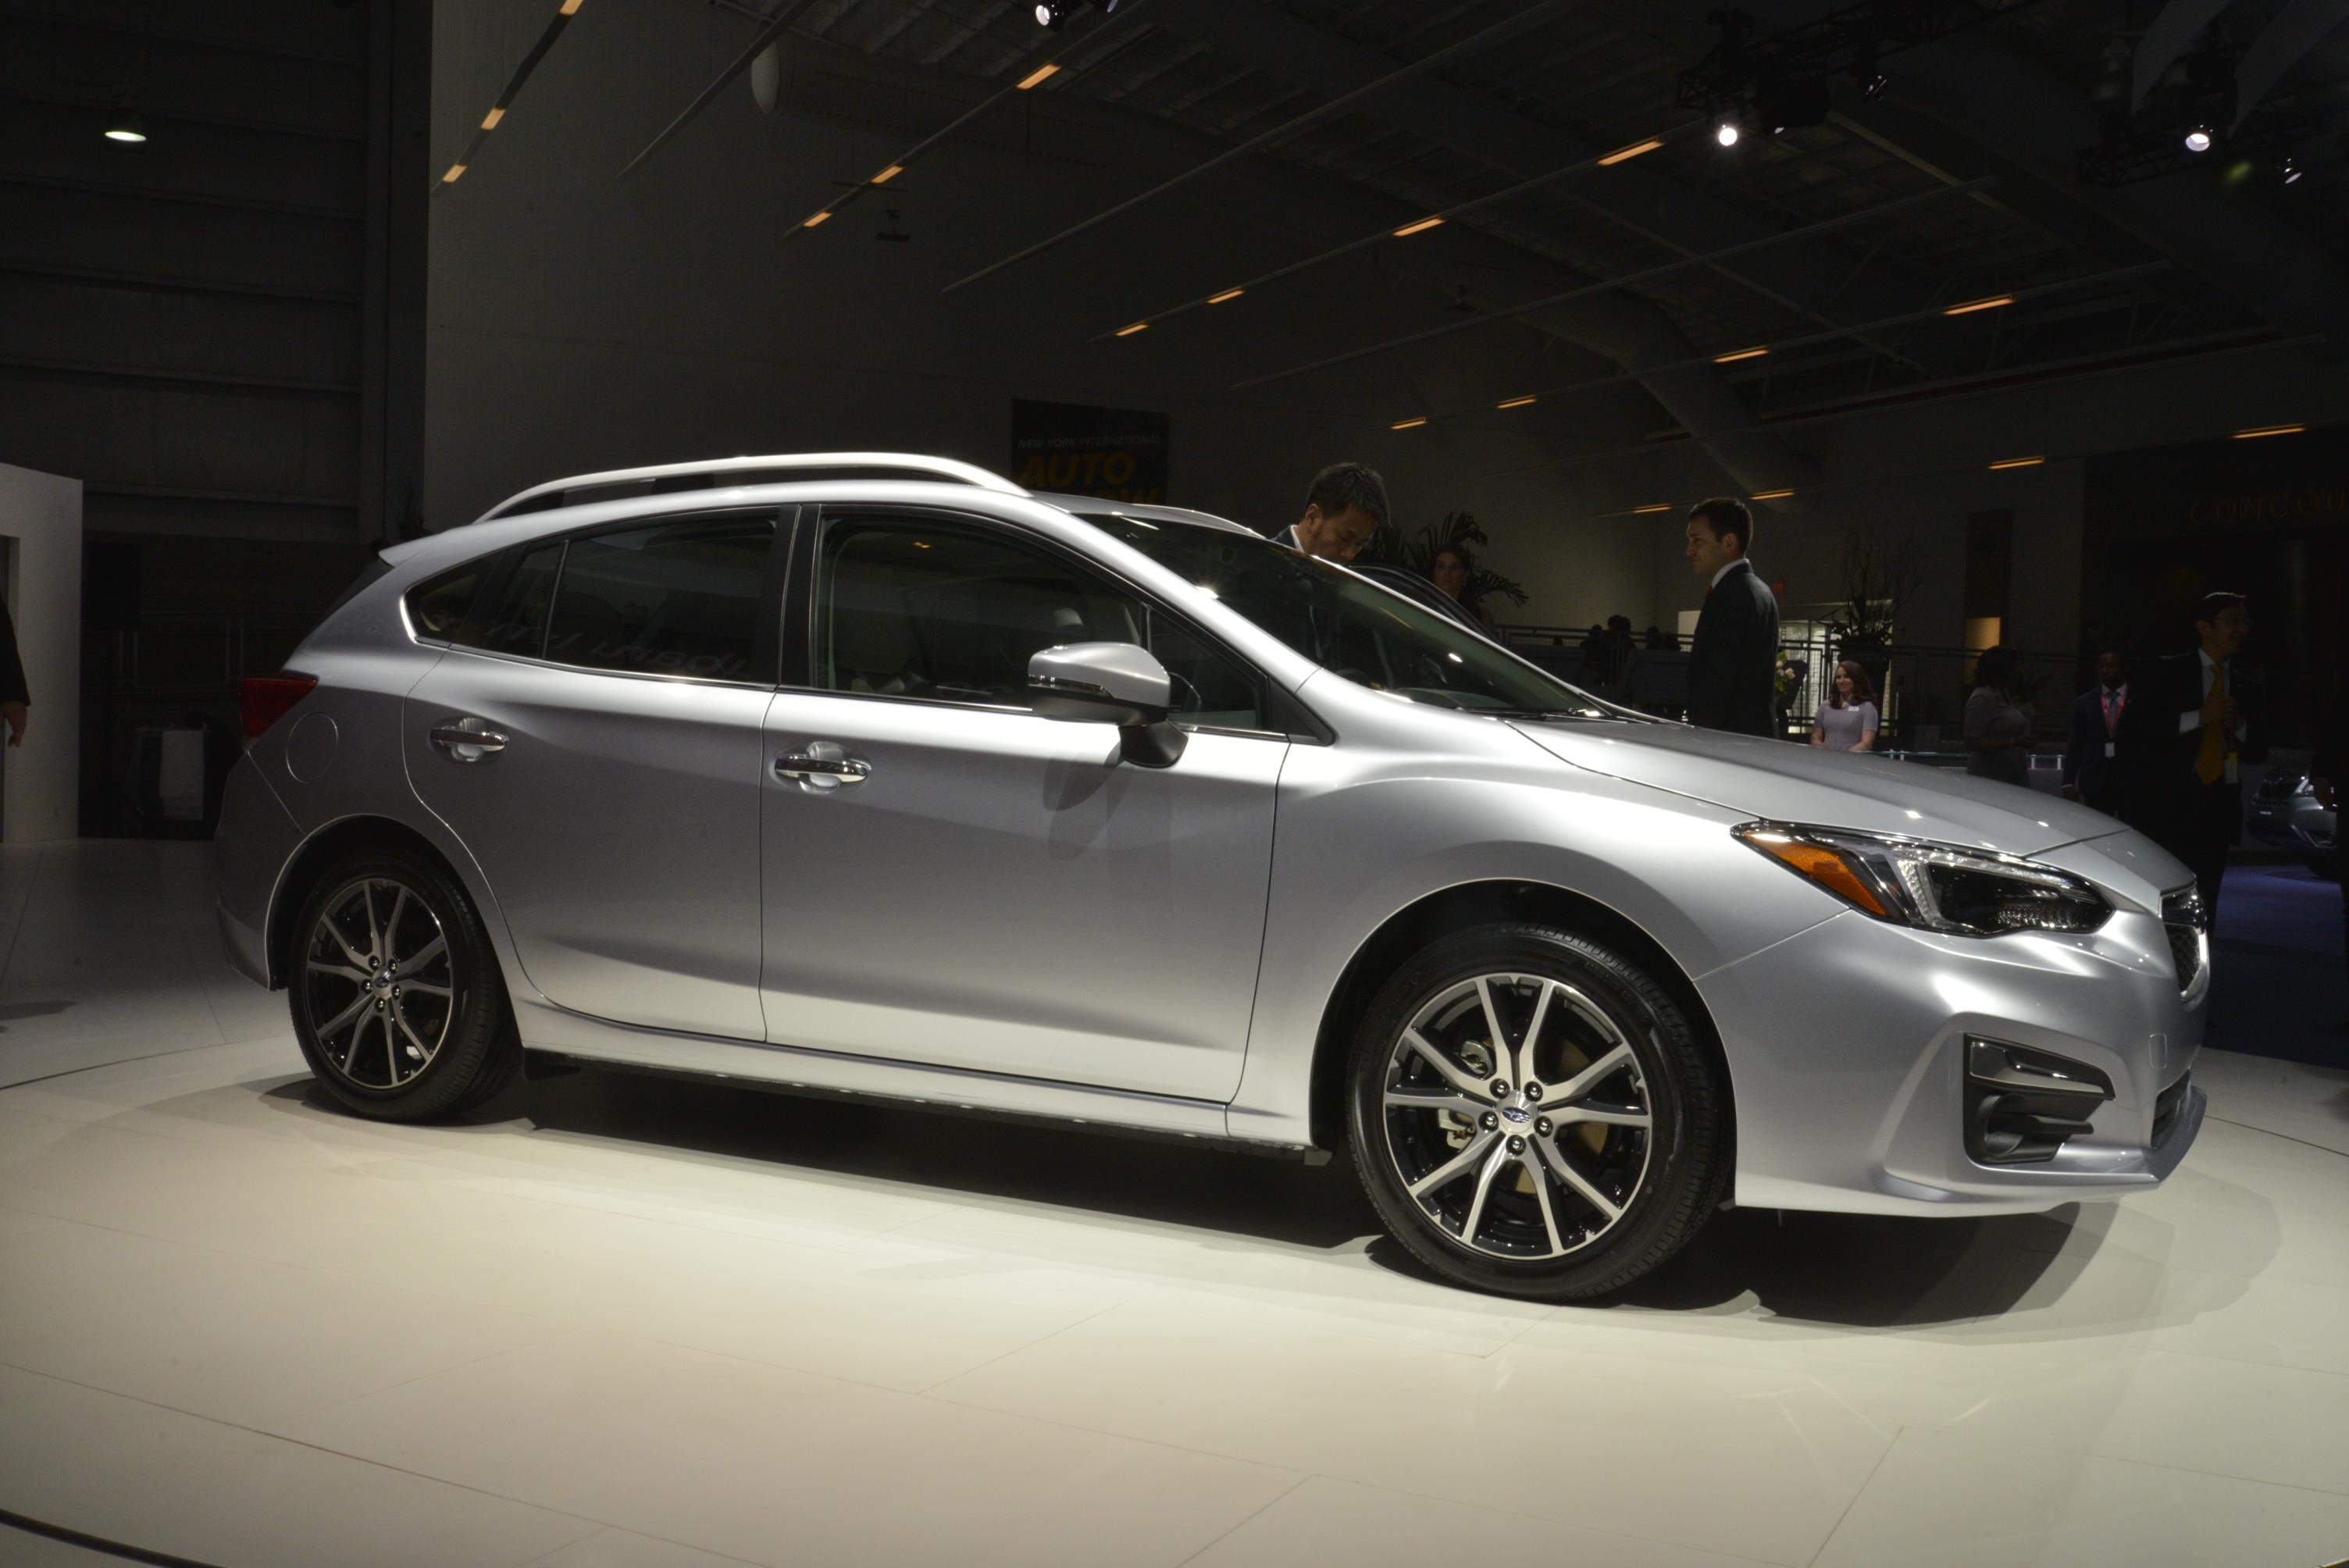 2017 Subaru Impreza Launched In Japan es With Plenty of Safety